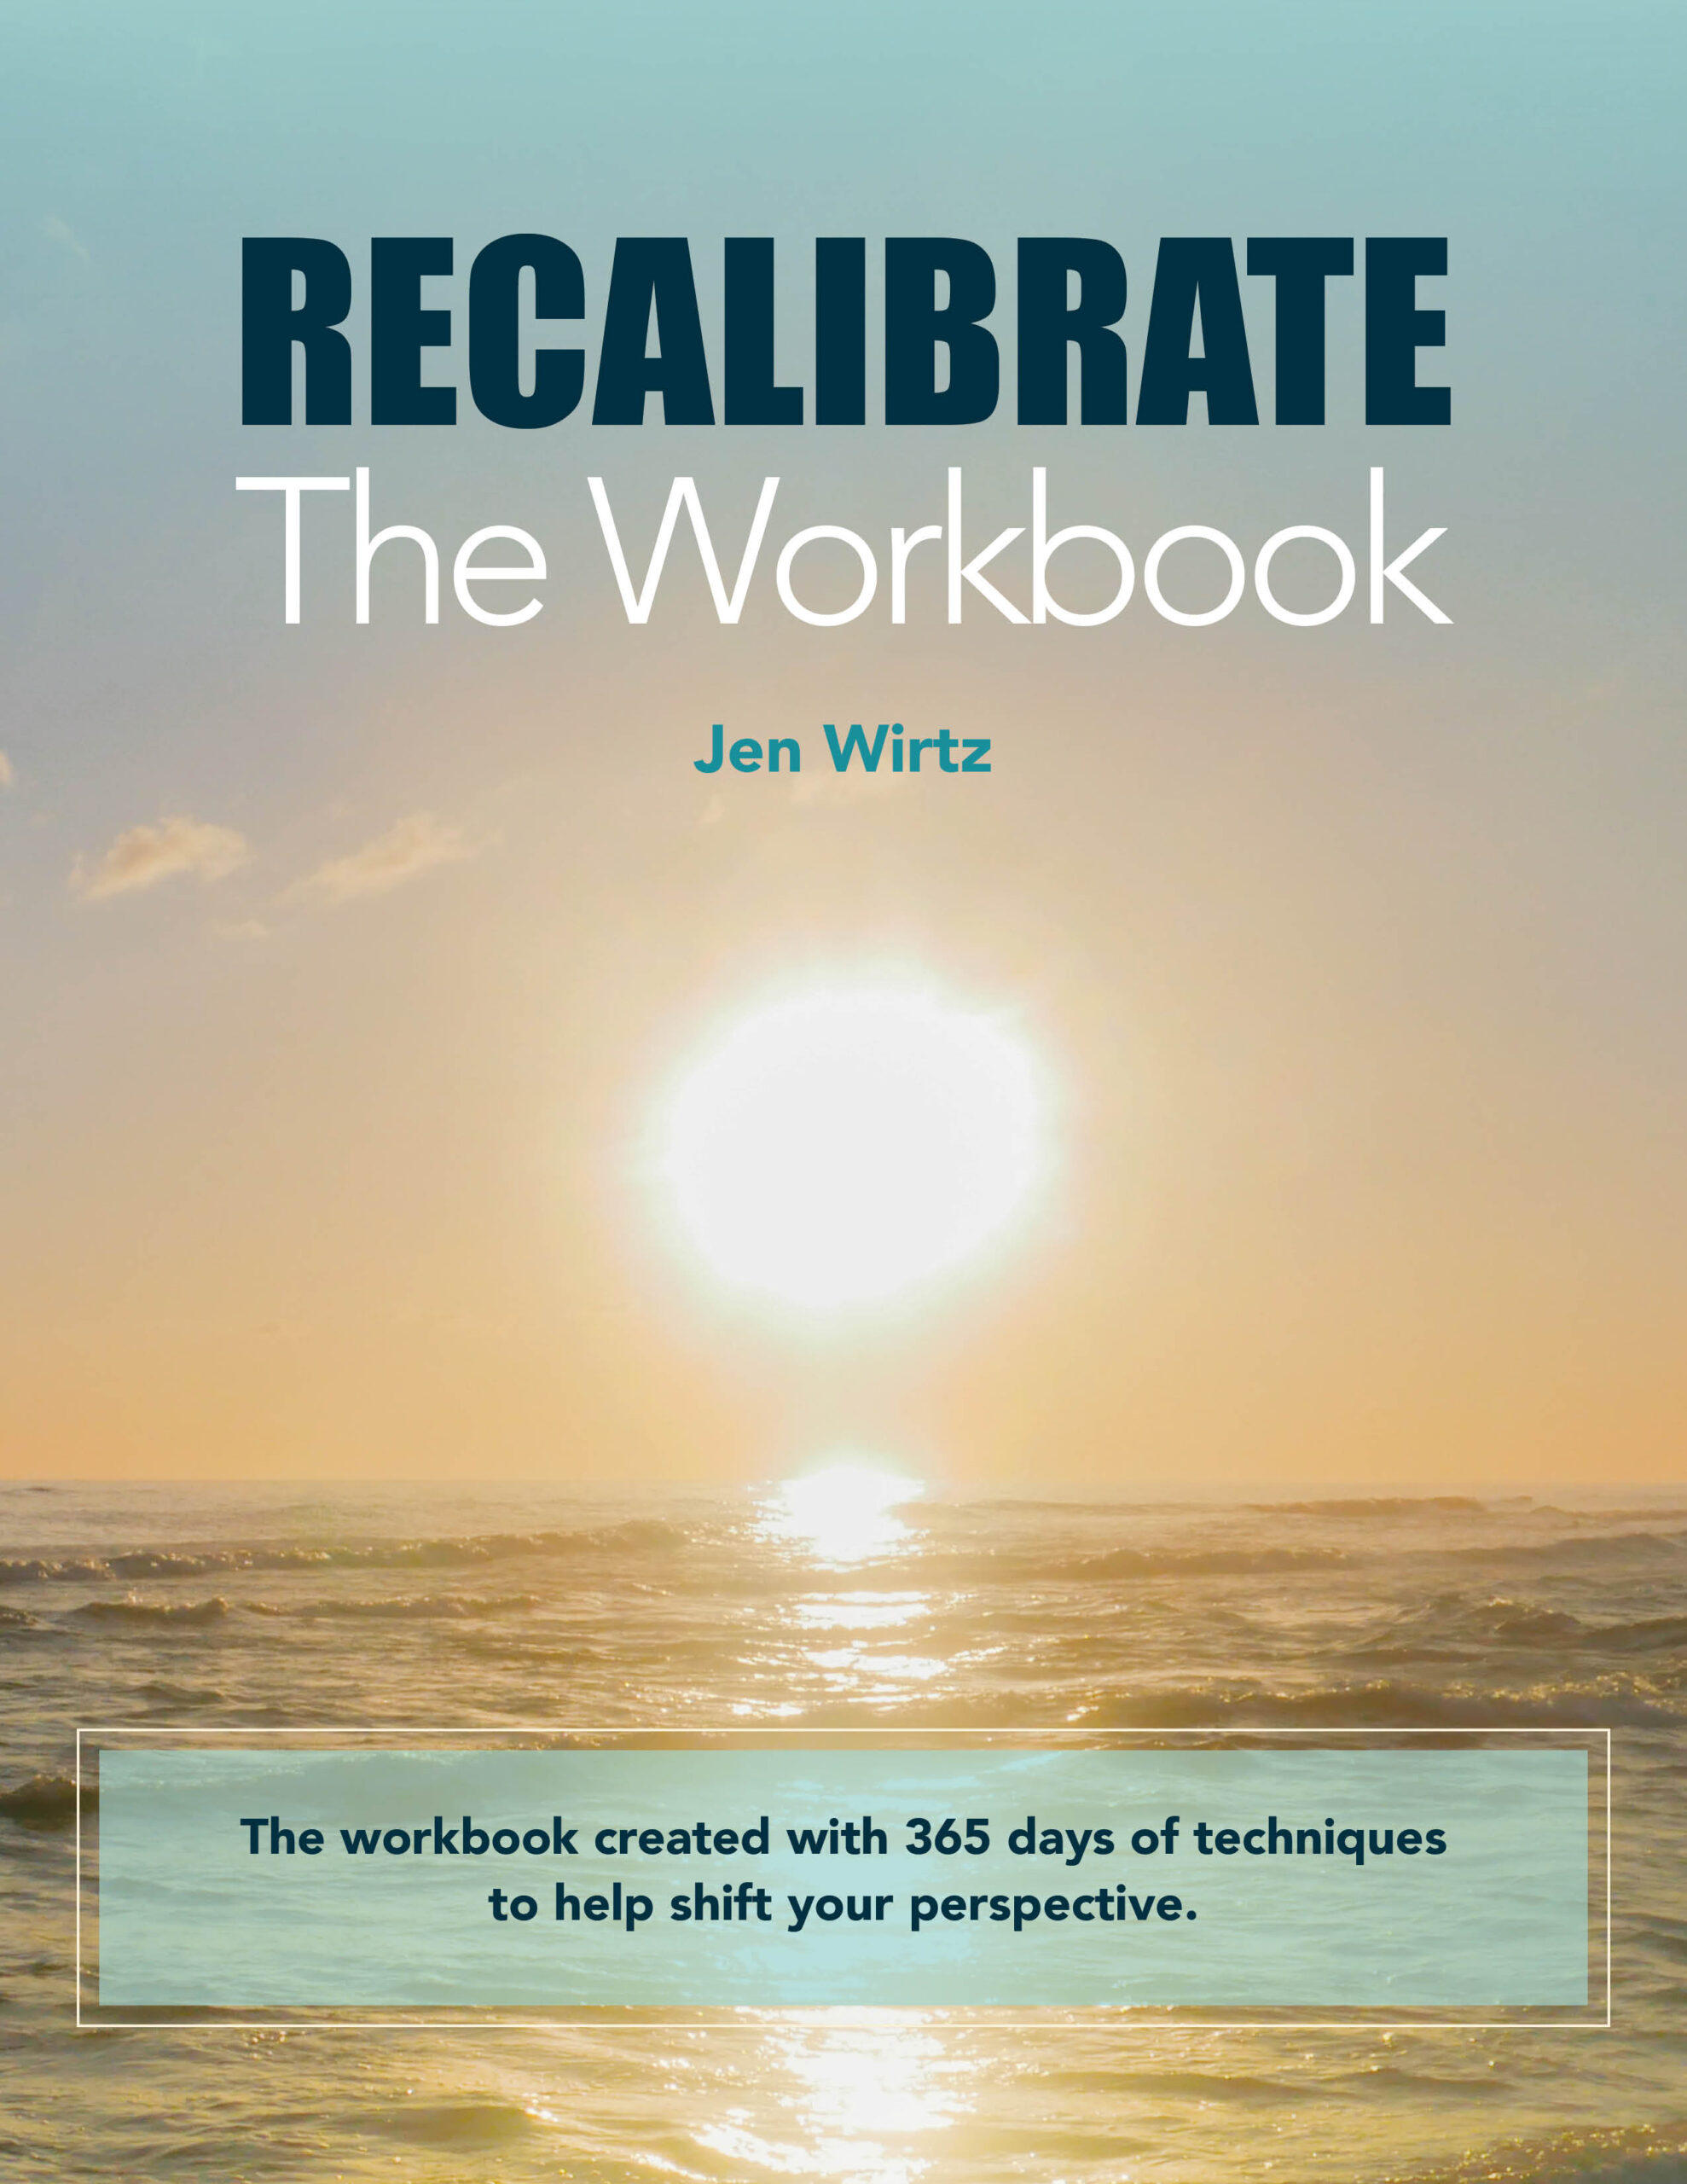 Recalibrate workbook